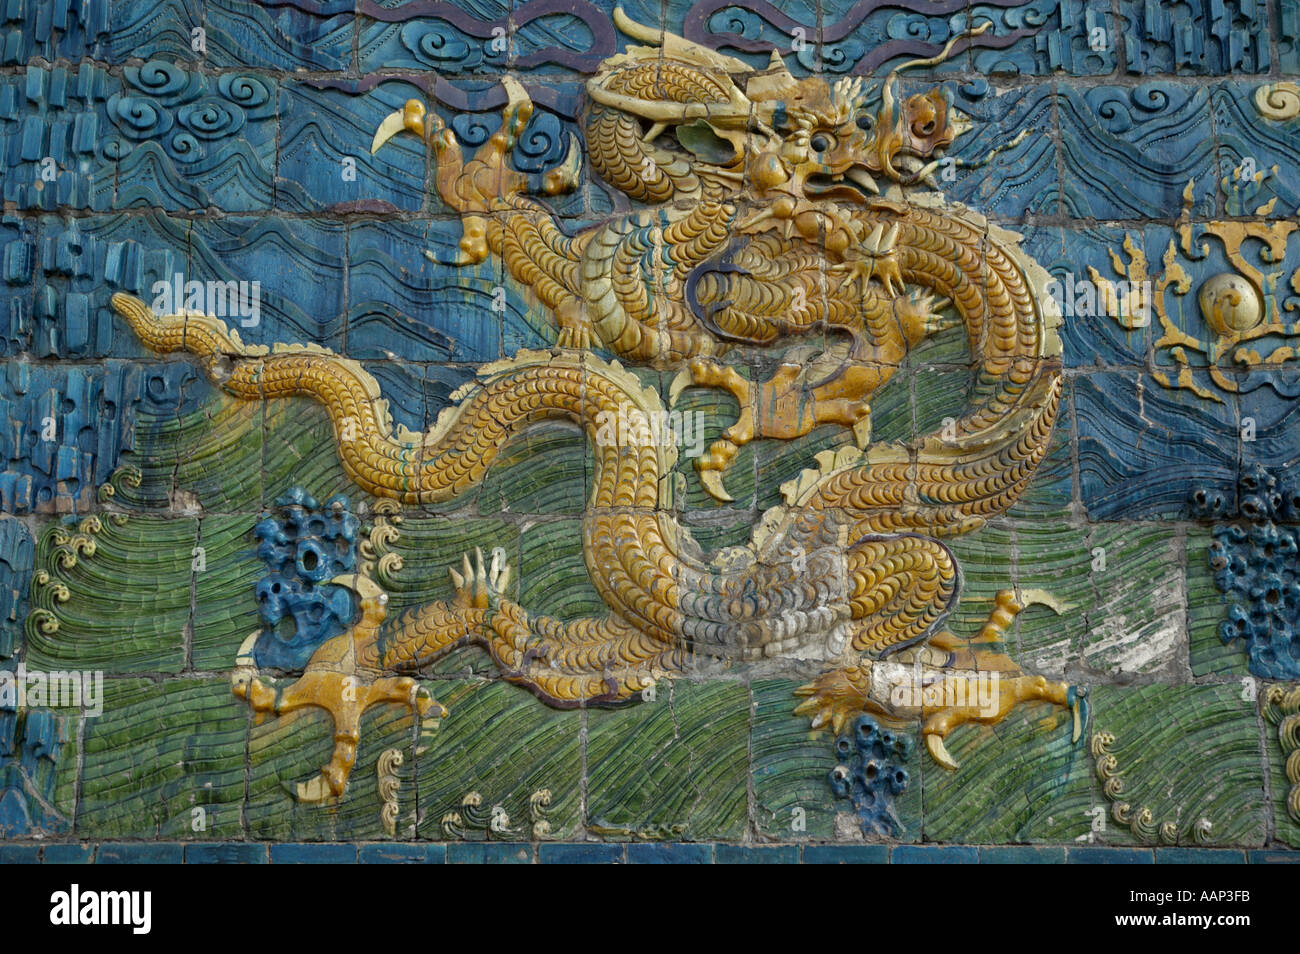 Ornate and decorative Chinese dragon painting on the Nine Dragon Screen in Datong, Shanxi, China. - Stock Image